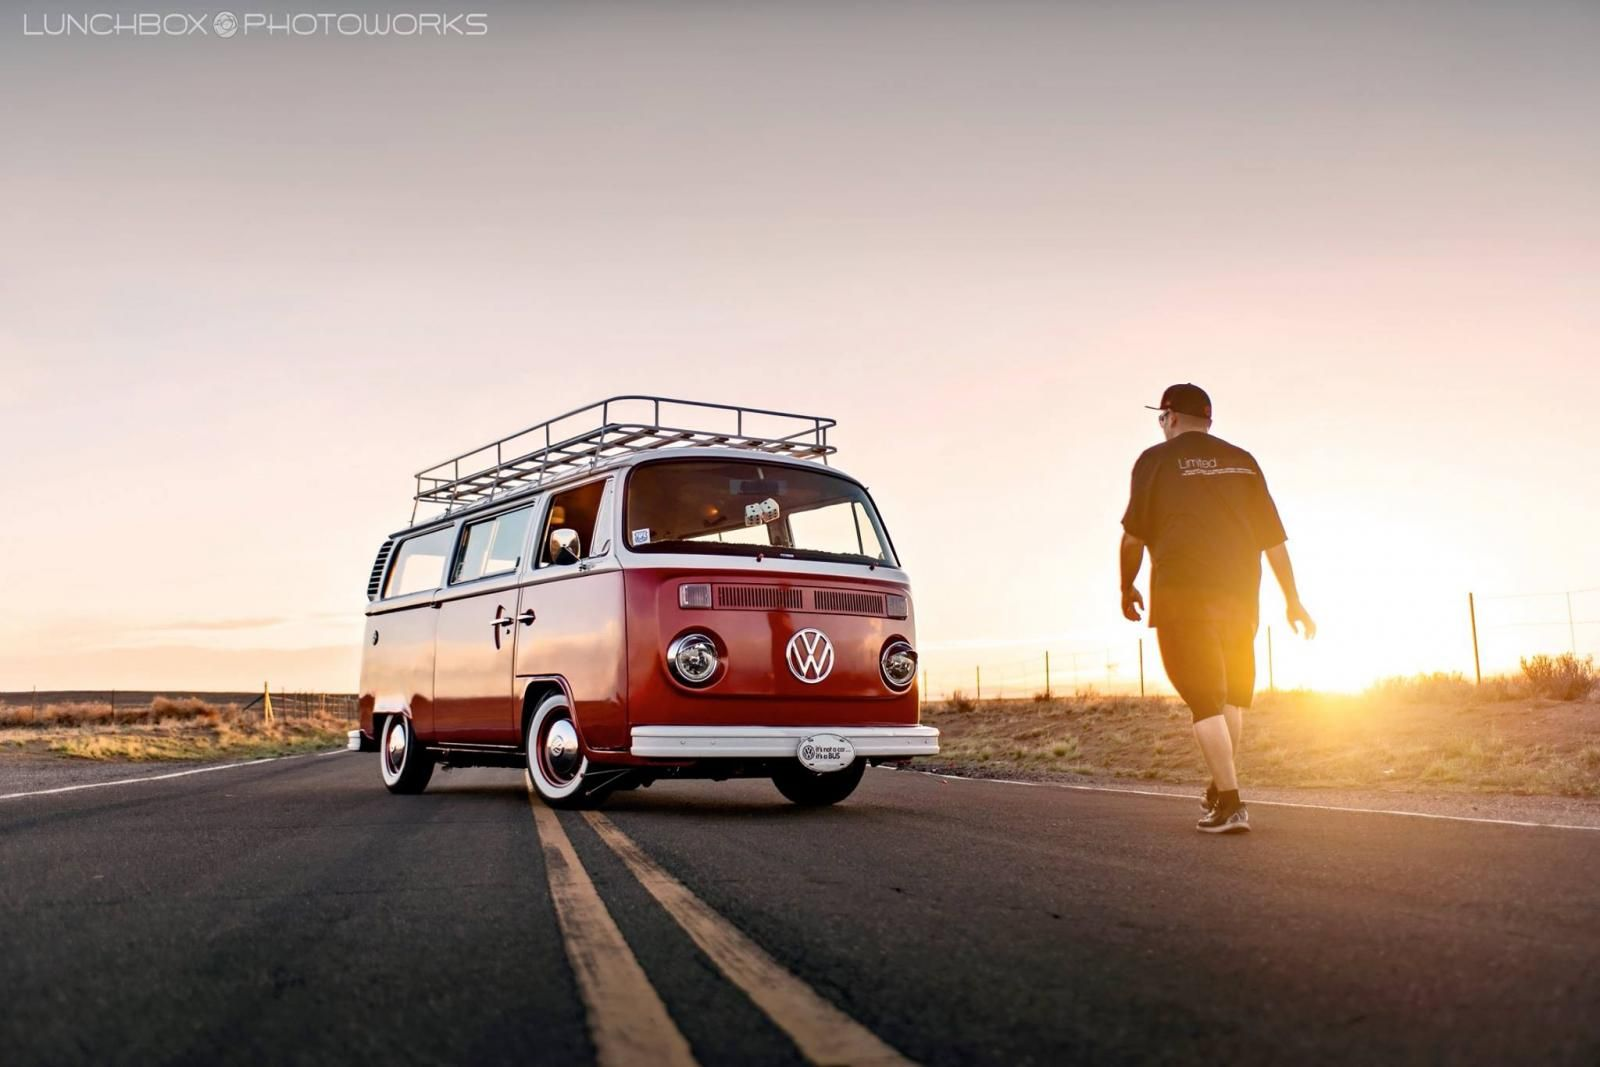 Sleeper Car Wallpaper Photoshoot Sunset In Albuquerque Nm Search For Quot 505 Vw